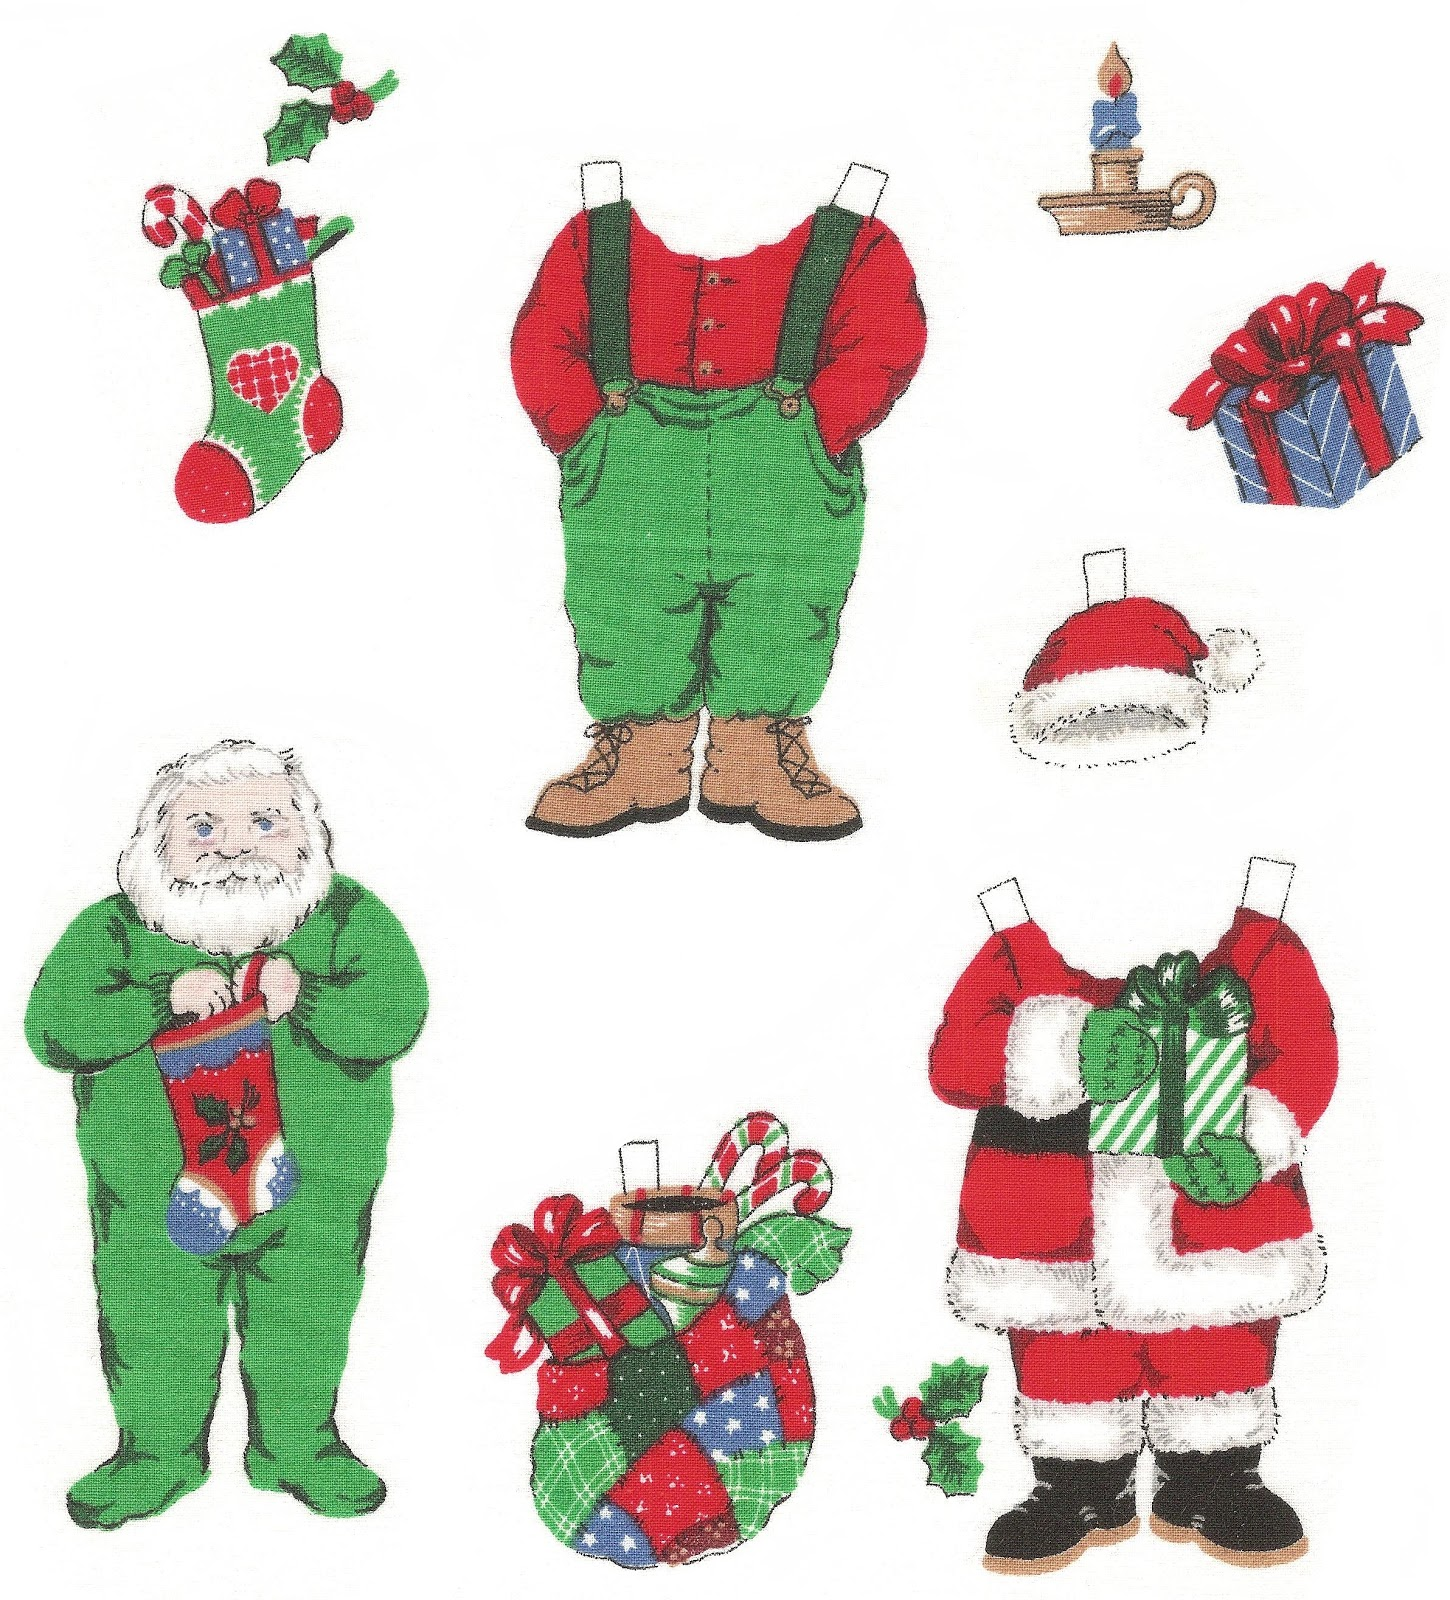 Mostly Paper Dolls Too!: Santa and Mrs. Claus Paper Dolls ...